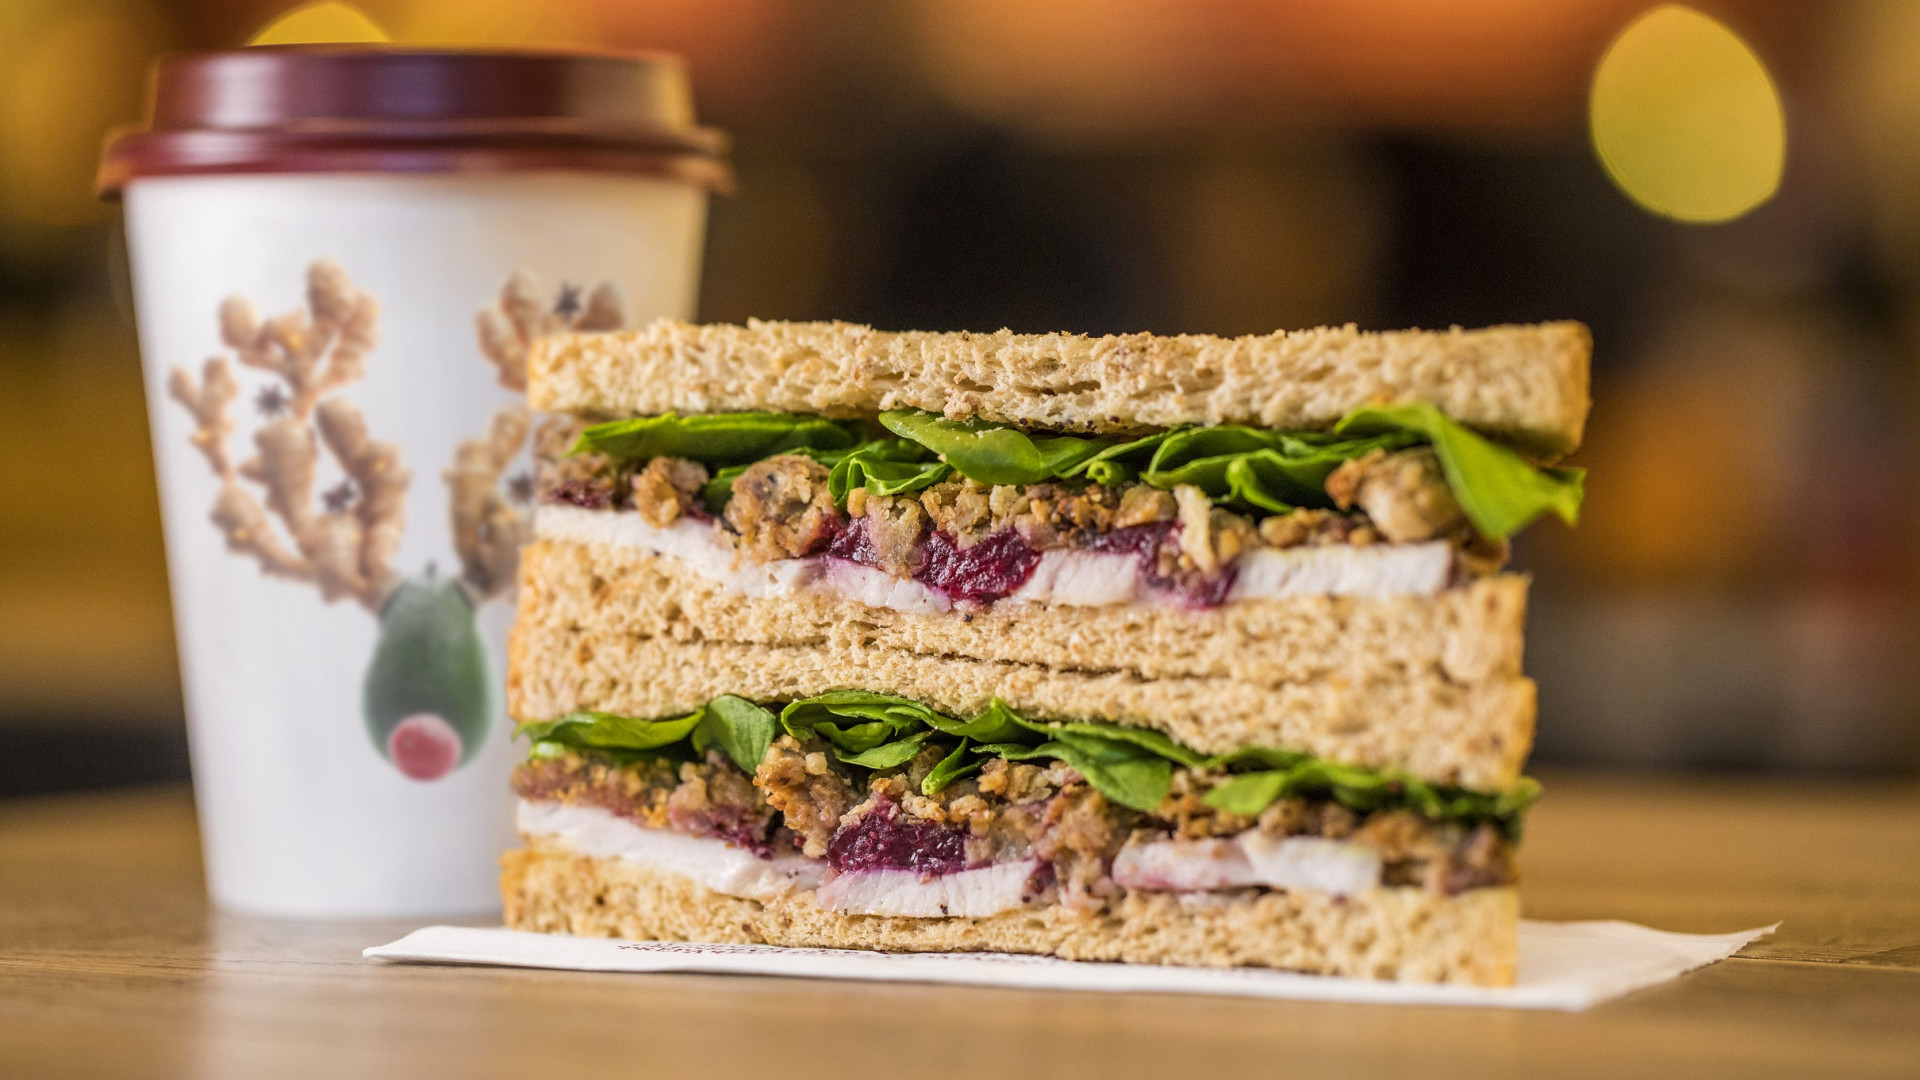 One of Pret a Manger's three Christmas sandwiches